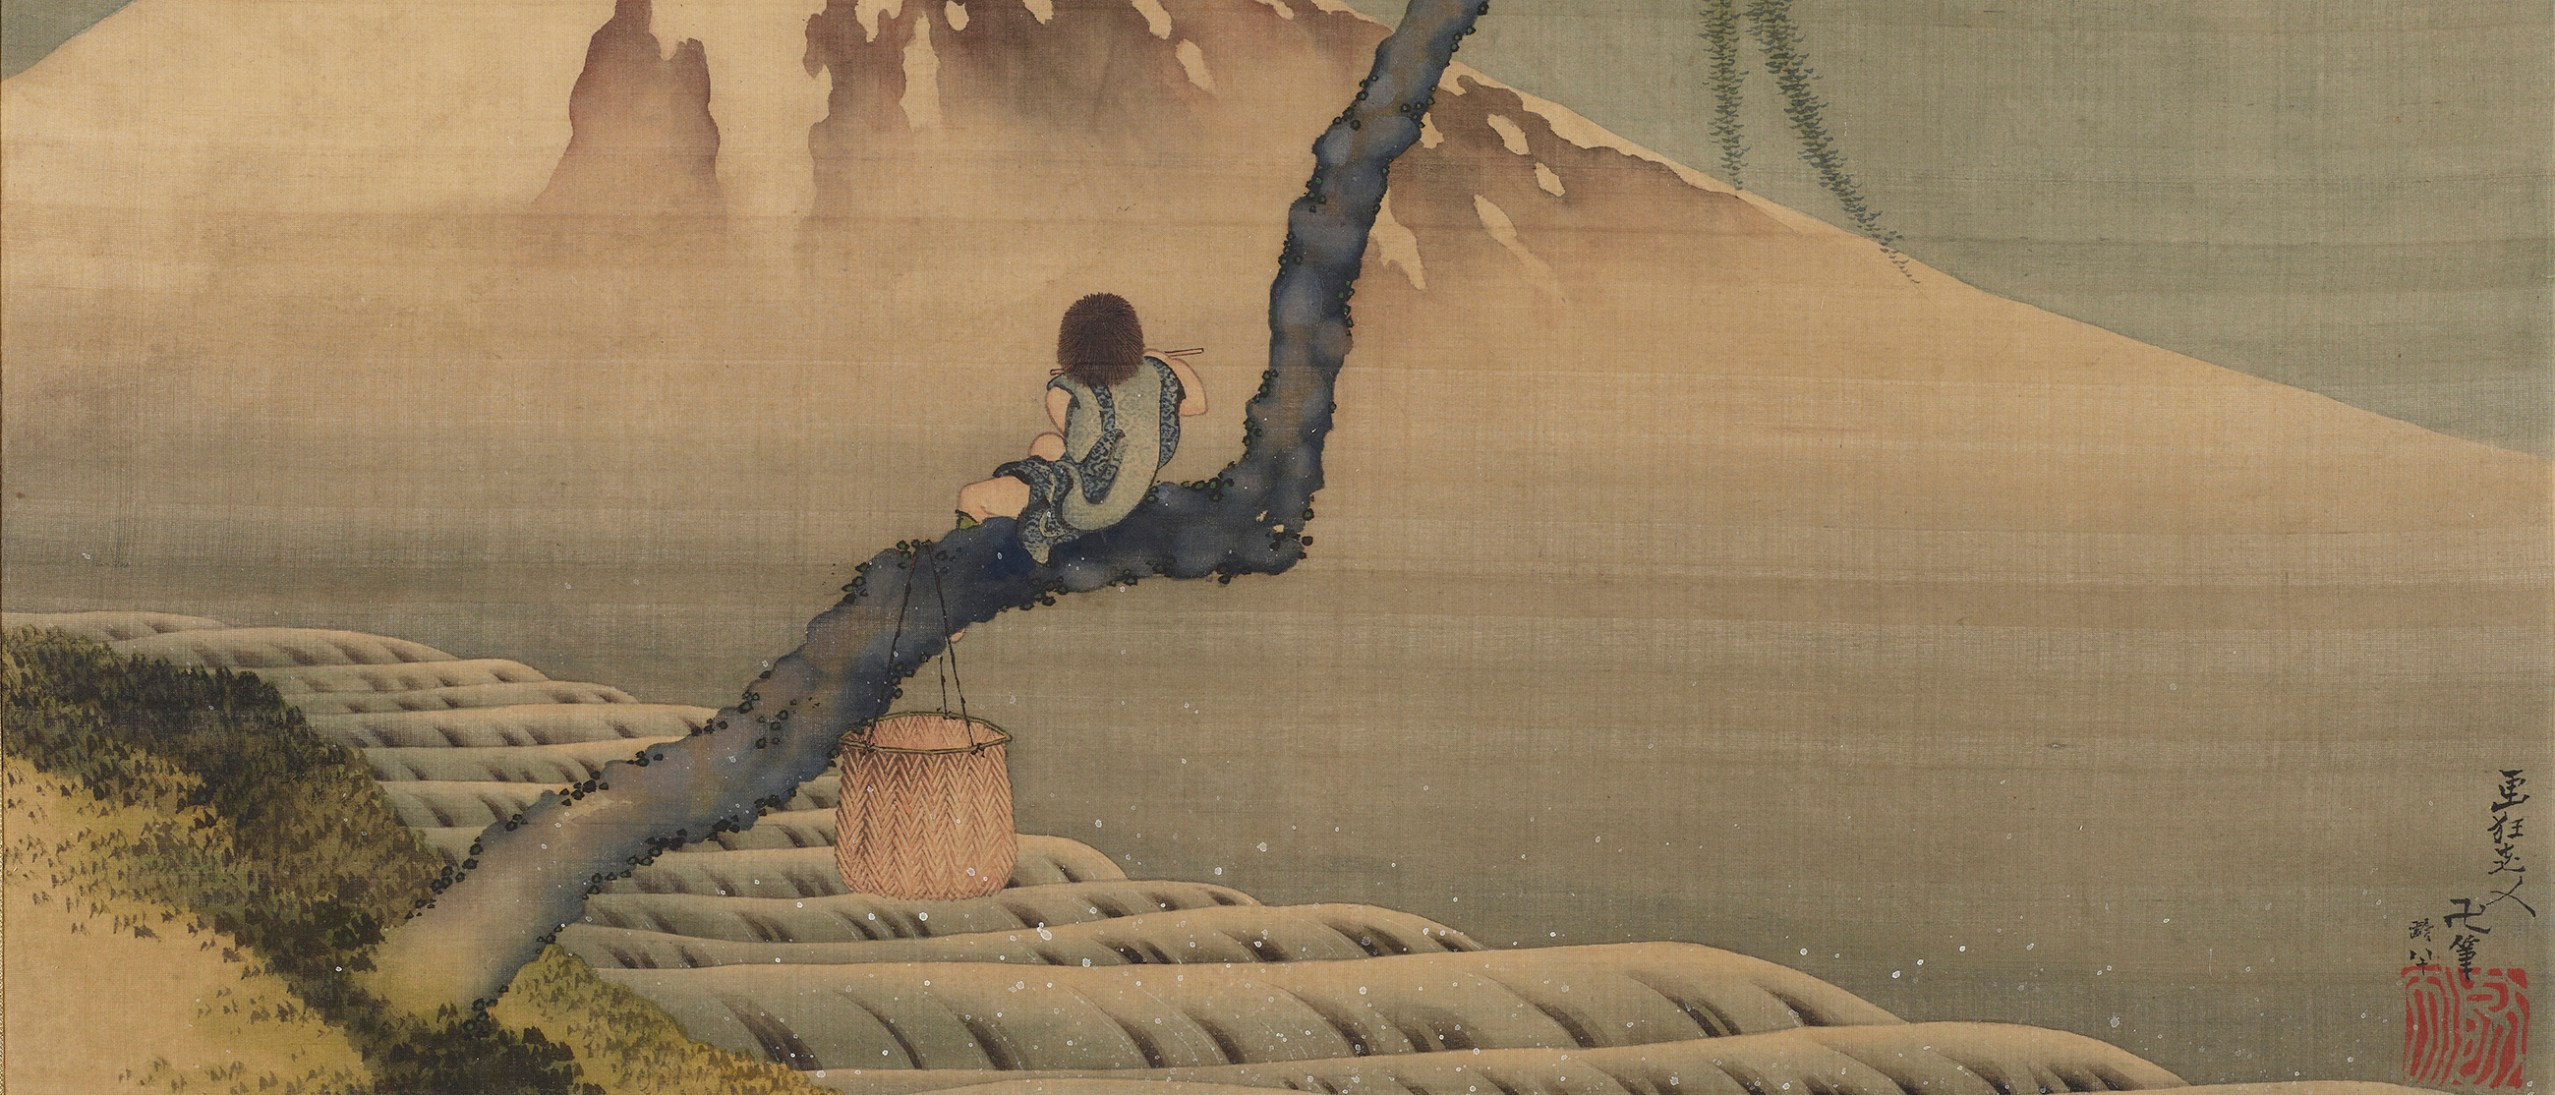 Detail image, Boy Viewing Mount Fuji; Katsushika Hokusai 葛飾北斎 (1760 - 1849); Japan, Edo period, 1839; Hanging scroll; ink and color on silk; Gift of Charles Lang Freer; Freer Gallery of Art F1898.110